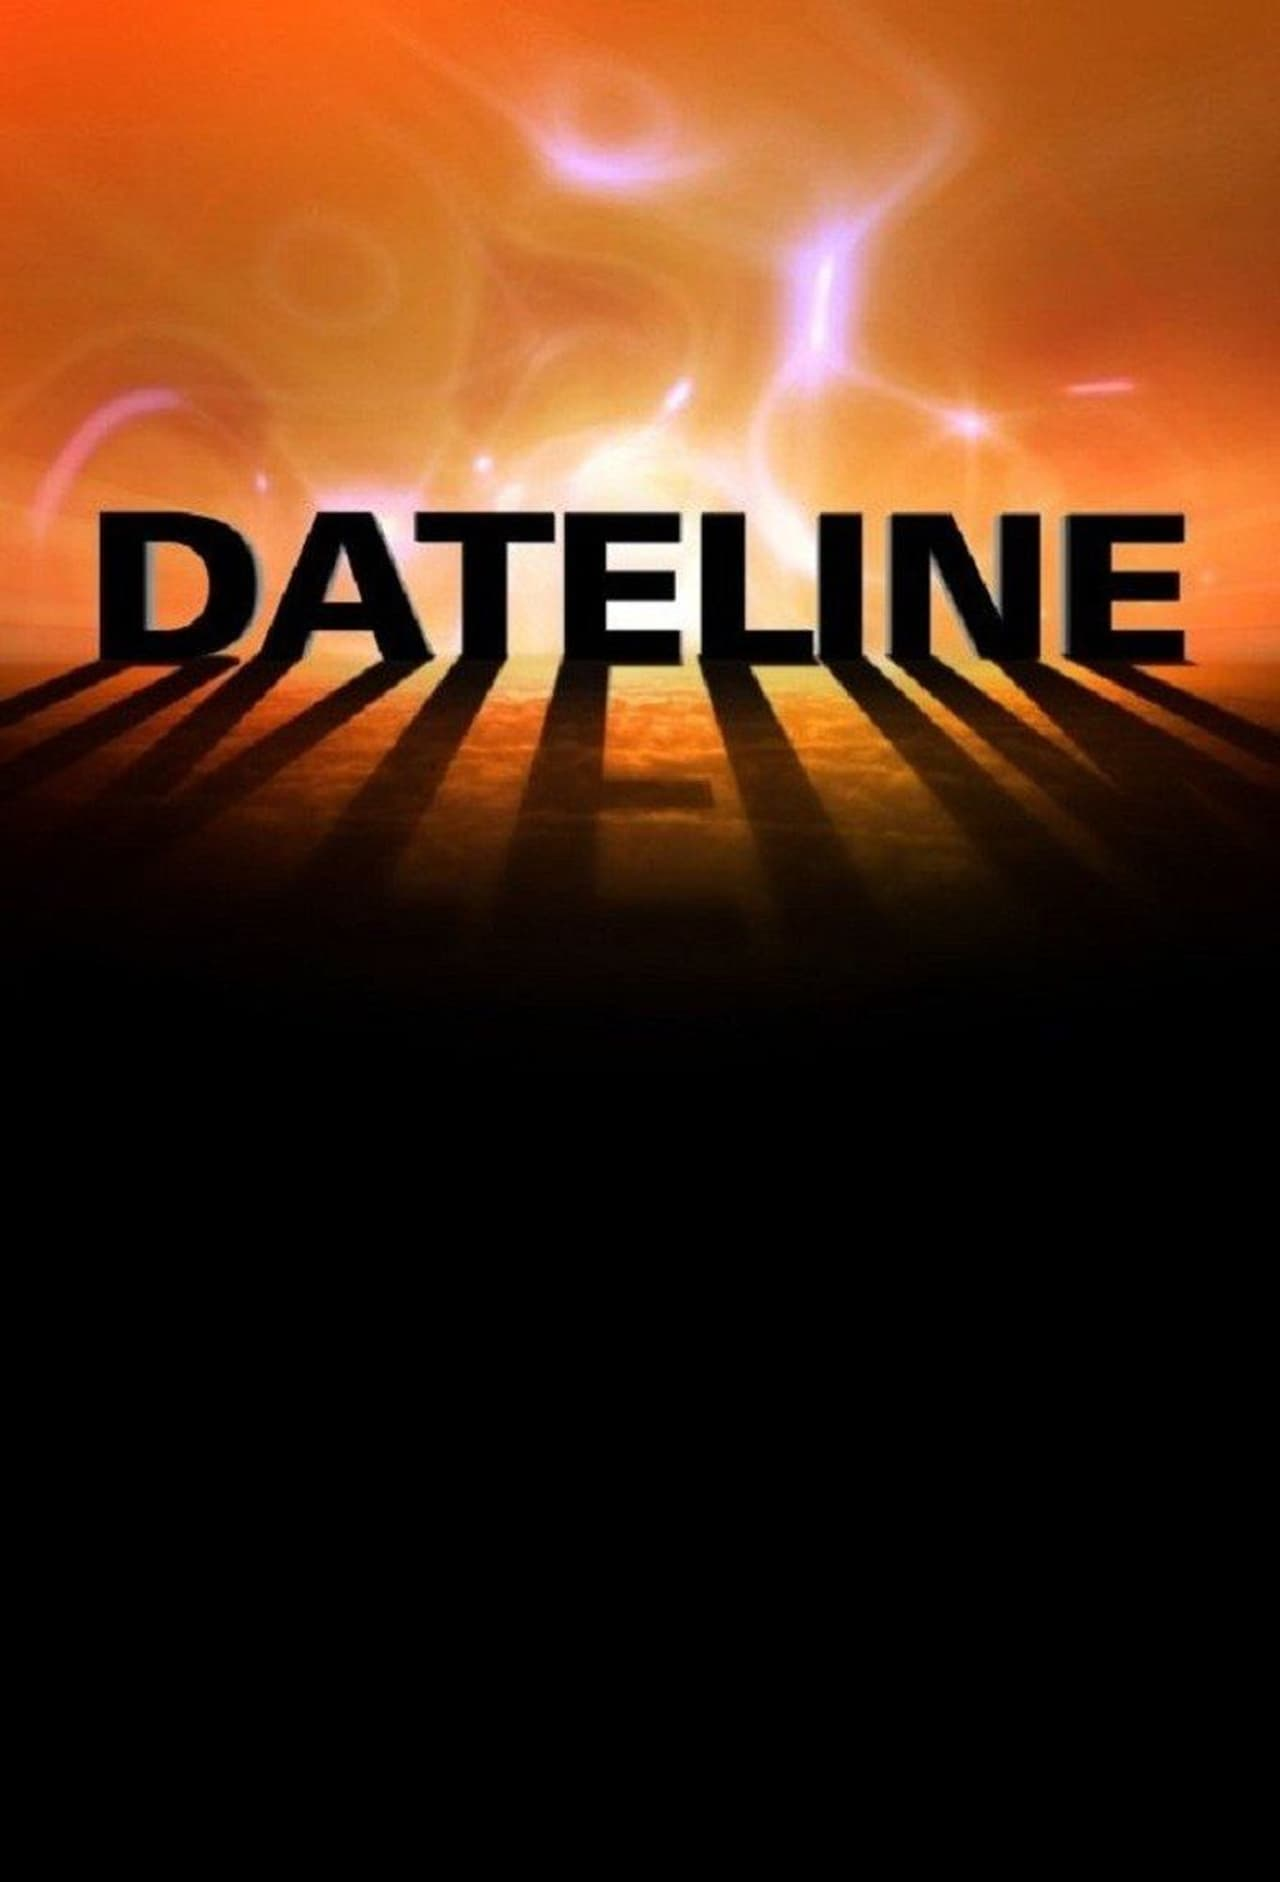 Putlocker Dateline Nbc Season 21 (2011)